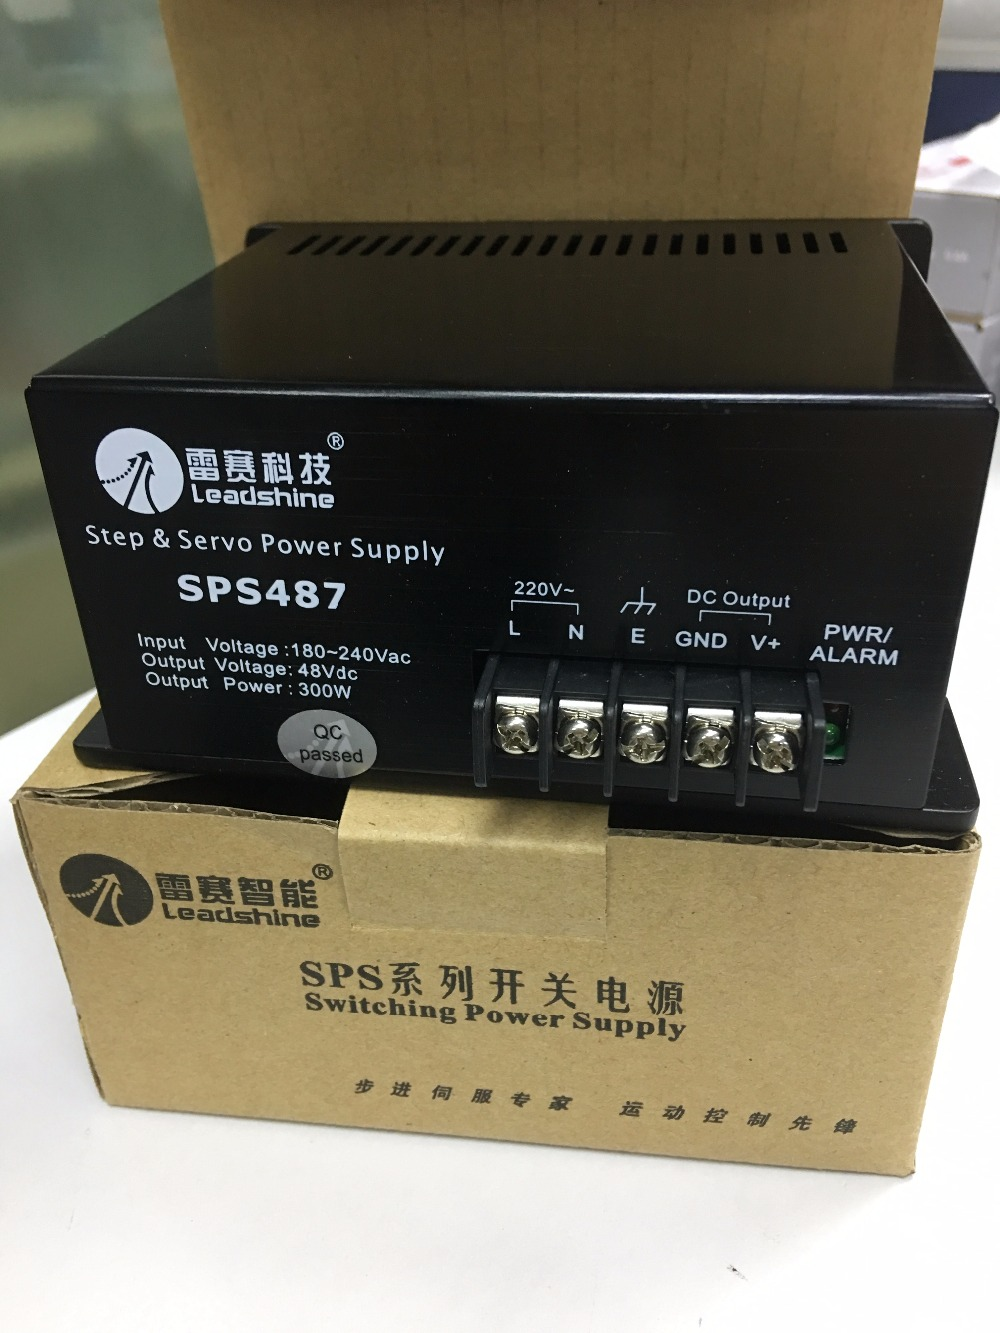 300W Leadshine switching power supply SPS487180-220VAC output 48VDC servo system power free shipping leadshine l5 750 el5 d0750 ach750 servo drive 220 230 vac input 5a peak output power to 750w hot sales